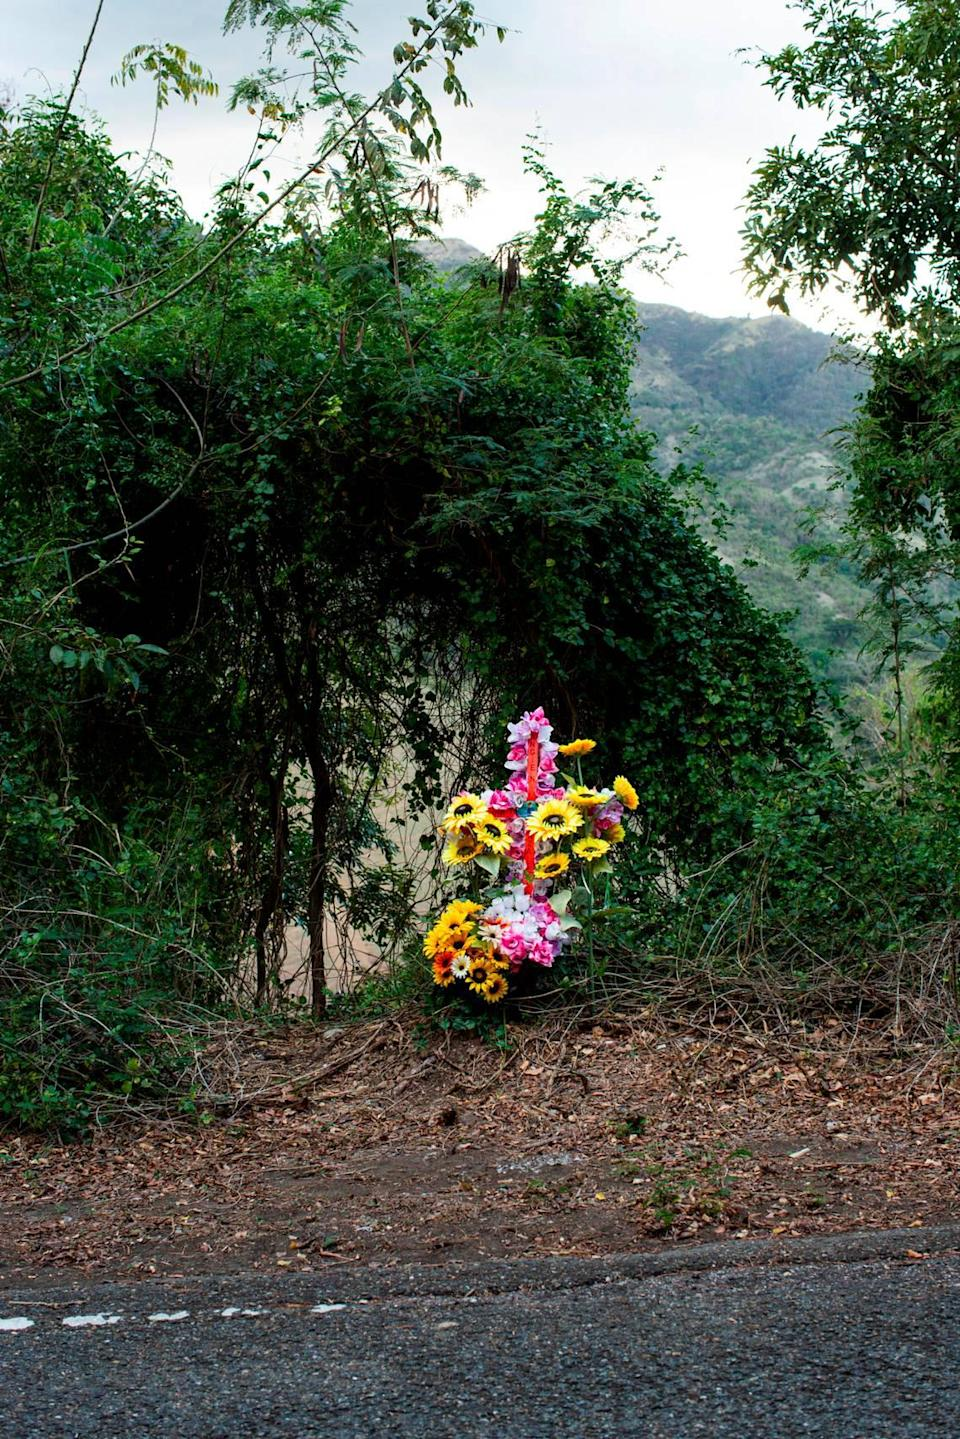 The roadside cross in Coamo, Puerto Rico, on March 21, 2021. The González Santos family erected the memorial to remember Angie González, who was allegedly killed by her partner of 16 years in January 2021.